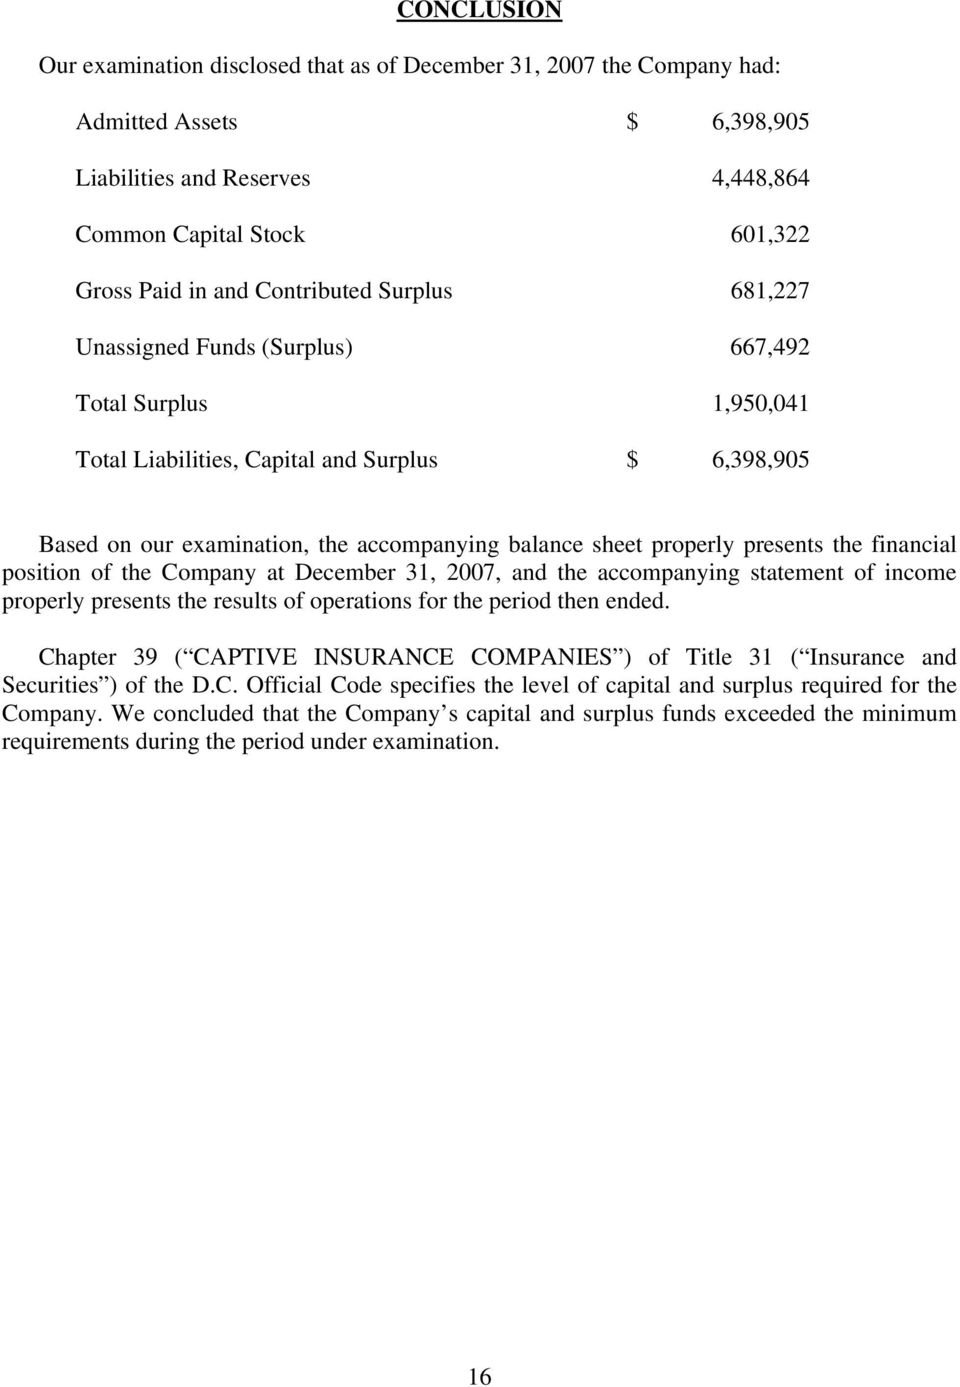 properly presents the financial position of the Company at December 31, 2007, and the accompanying statement of income properly presents the results of operations for the period then ended.